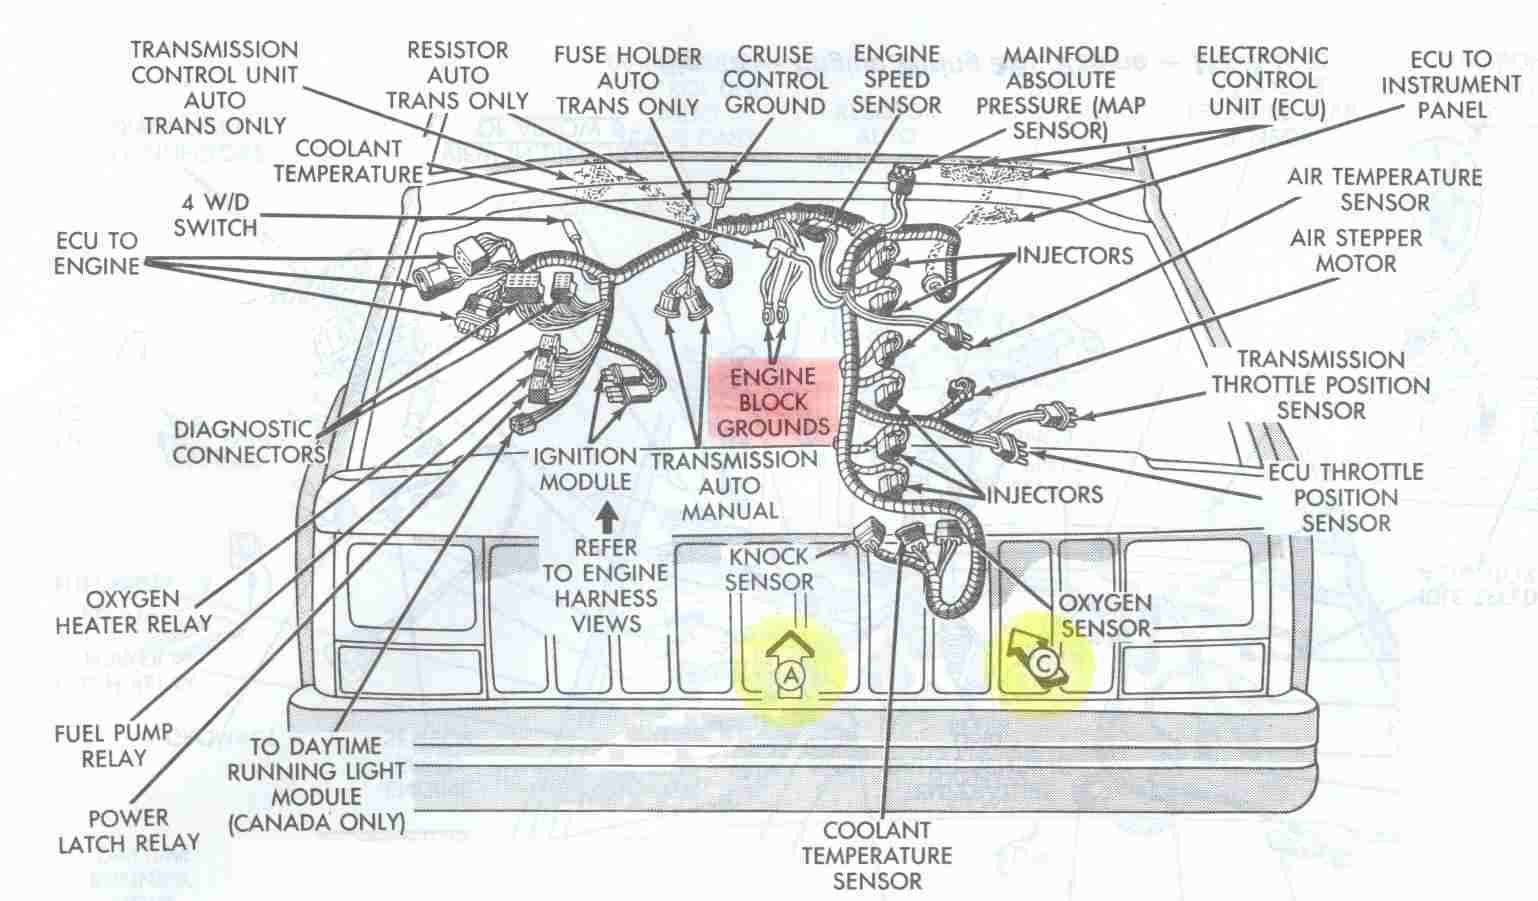 ab0134a7d9e021431187af597eb4aeca engine bay schematic showing major electrical ground points for 1991 jeep wrangler wiring schematic at webbmarketing.co